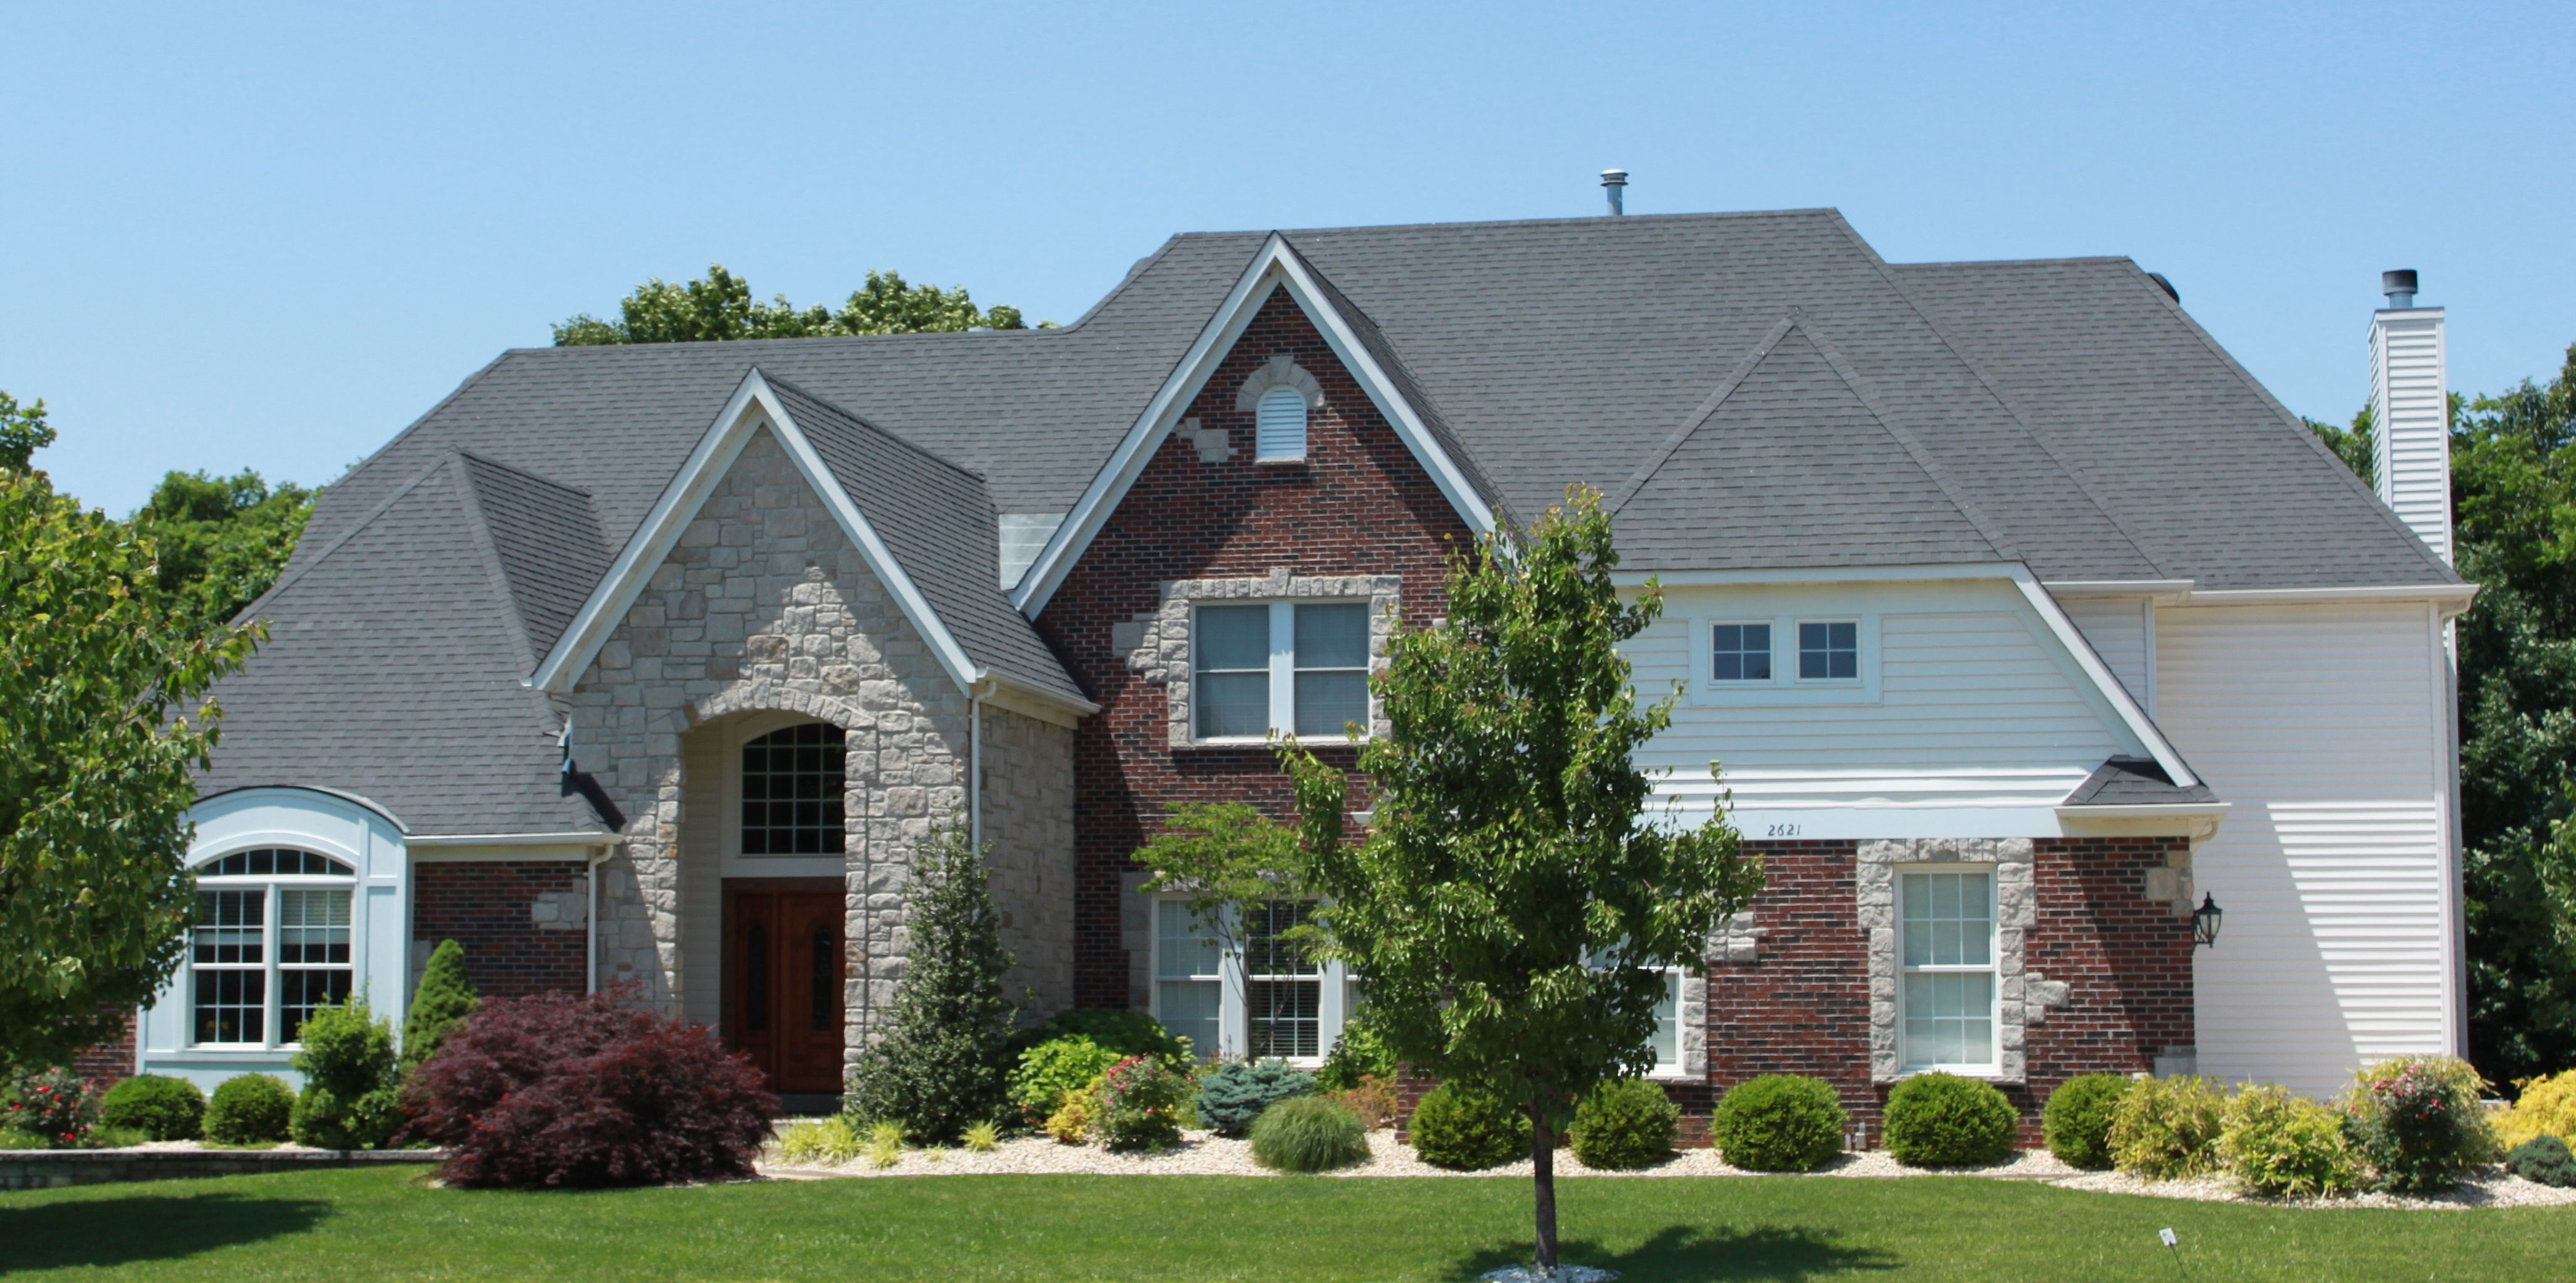 Roofing and Roof Repair Completed in St Louis